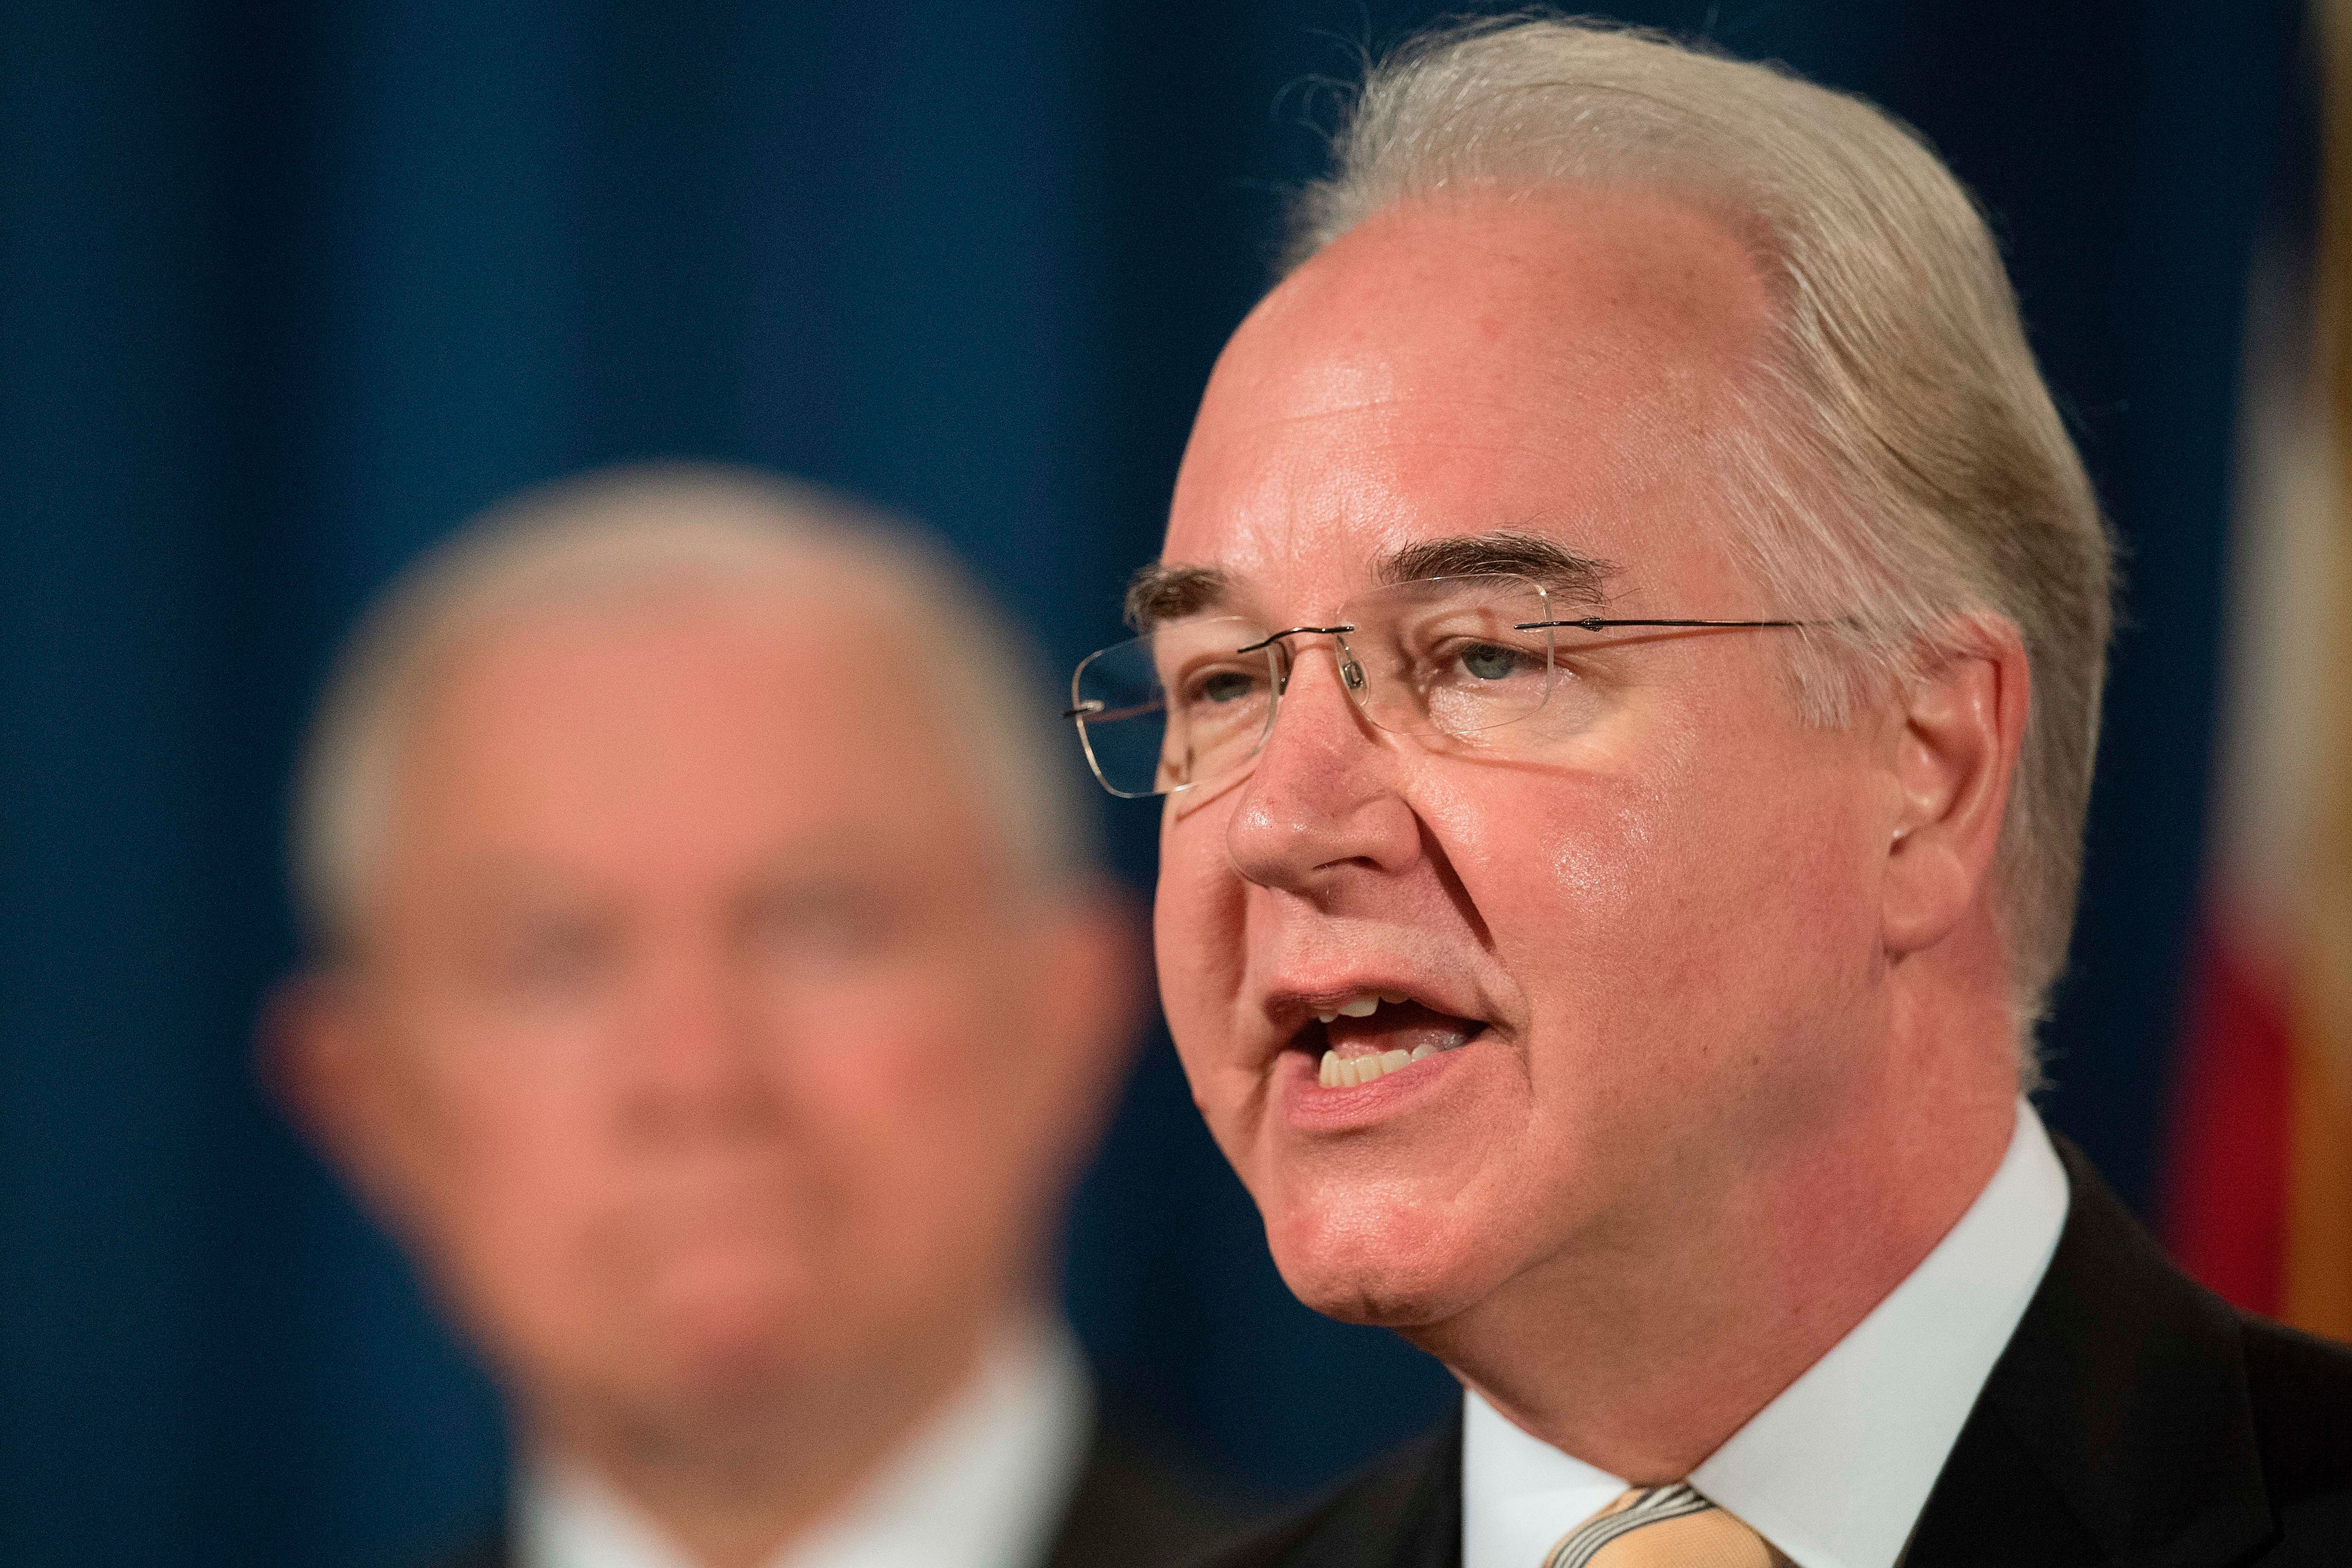 Health and Human Services Secretary Tom Price speaks during a press conference at the US Department of Justice in Washington, DC, on July 13, 2017.   / AFP PHOTO / JIM WATSON        (Photo credit should read JIM WATSON/AFP/Getty Images)